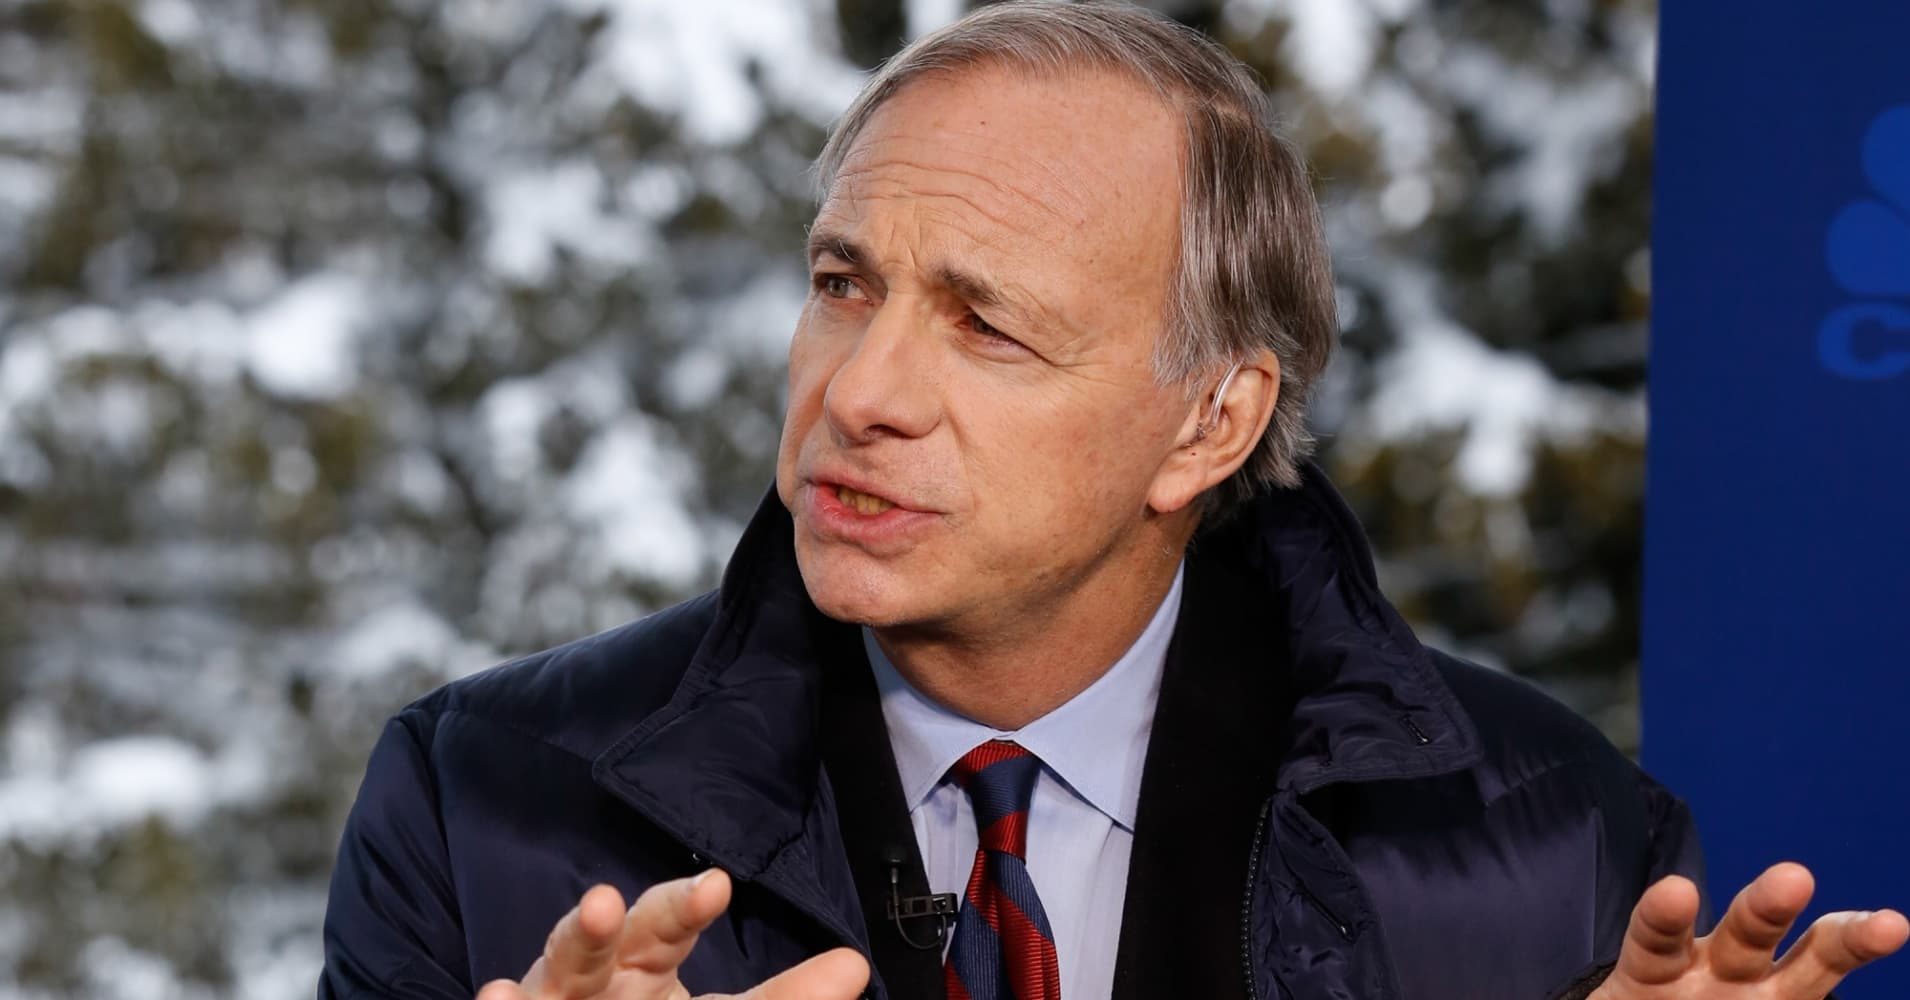 Ray Dalio, Bridgewater Associates Founder, President and CIO, in an interview at the annual World Economic Forum in Davos, Switzerland, on January 20, 2016.